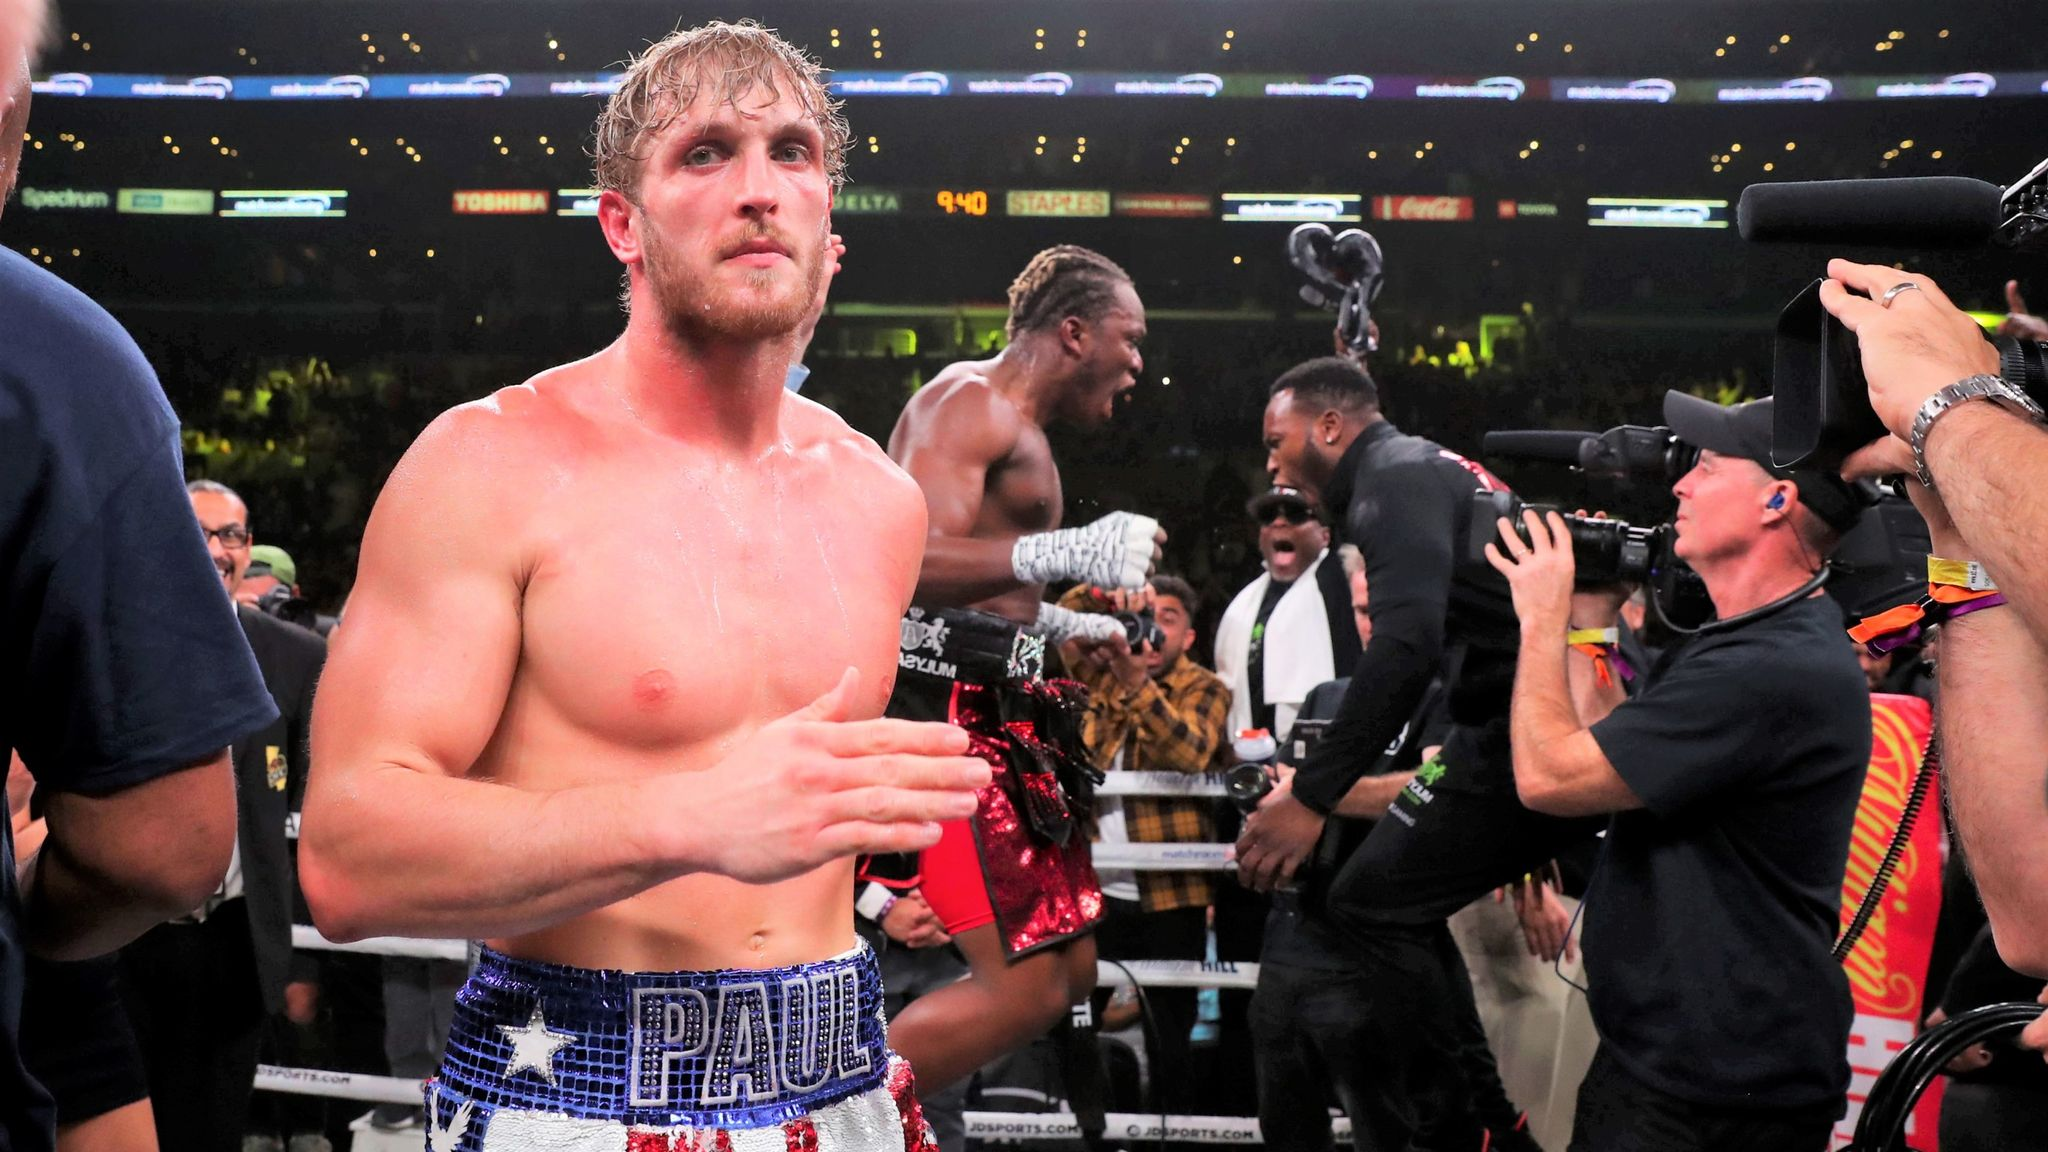 Logan Paul to appeal KSI defeat in YouTube rematch